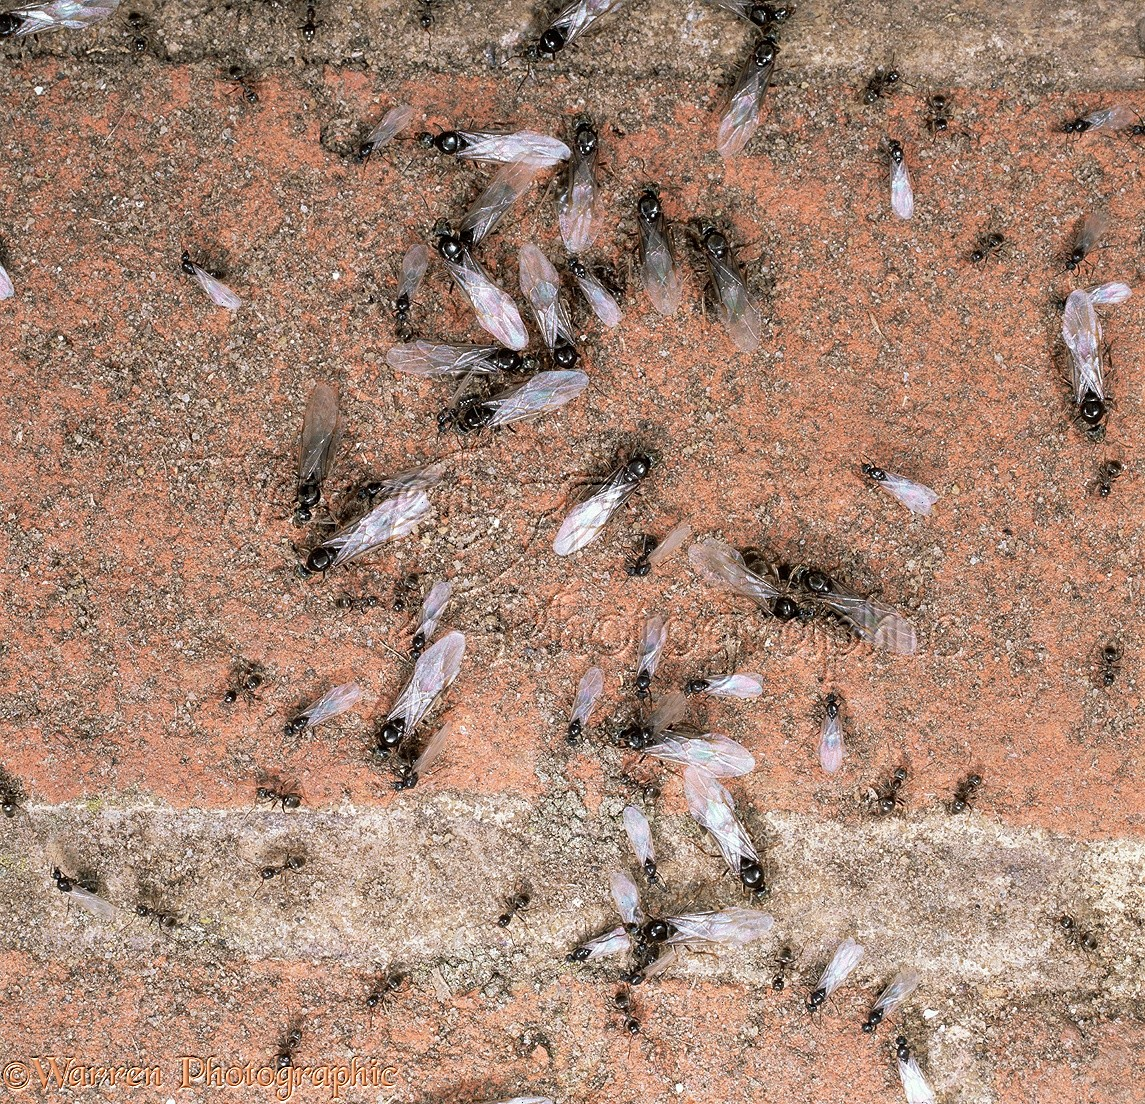 Garden Black Ant winged males and females photo WP16807